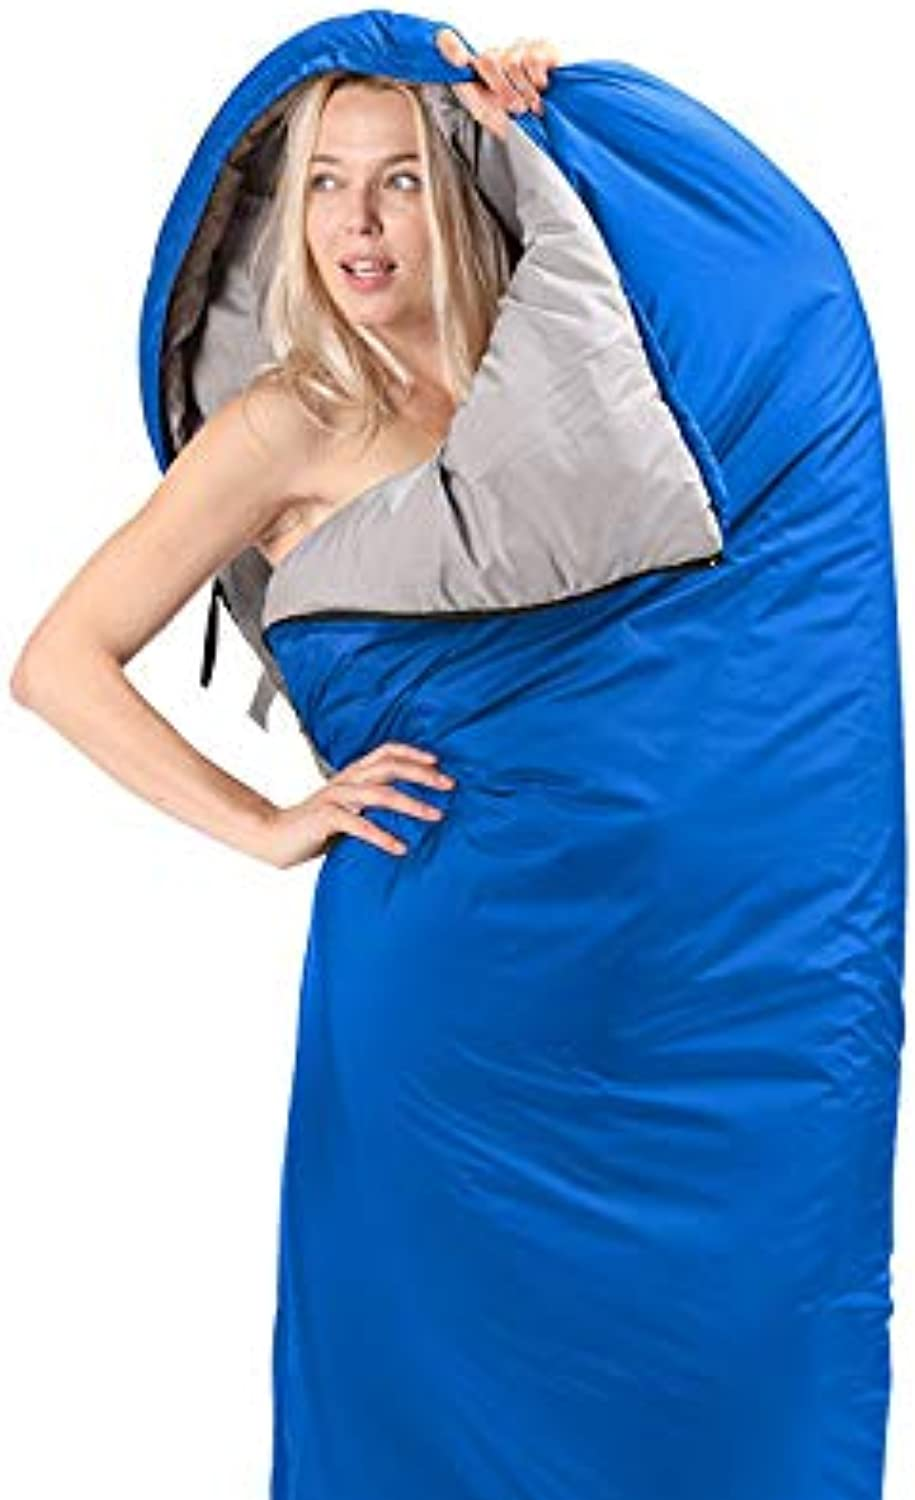 Outdoor Sleeping Bag, Envelope Portable and Lightweight for 34 Season Warm Camping Gear Equipment, Traveling, and Outdoors